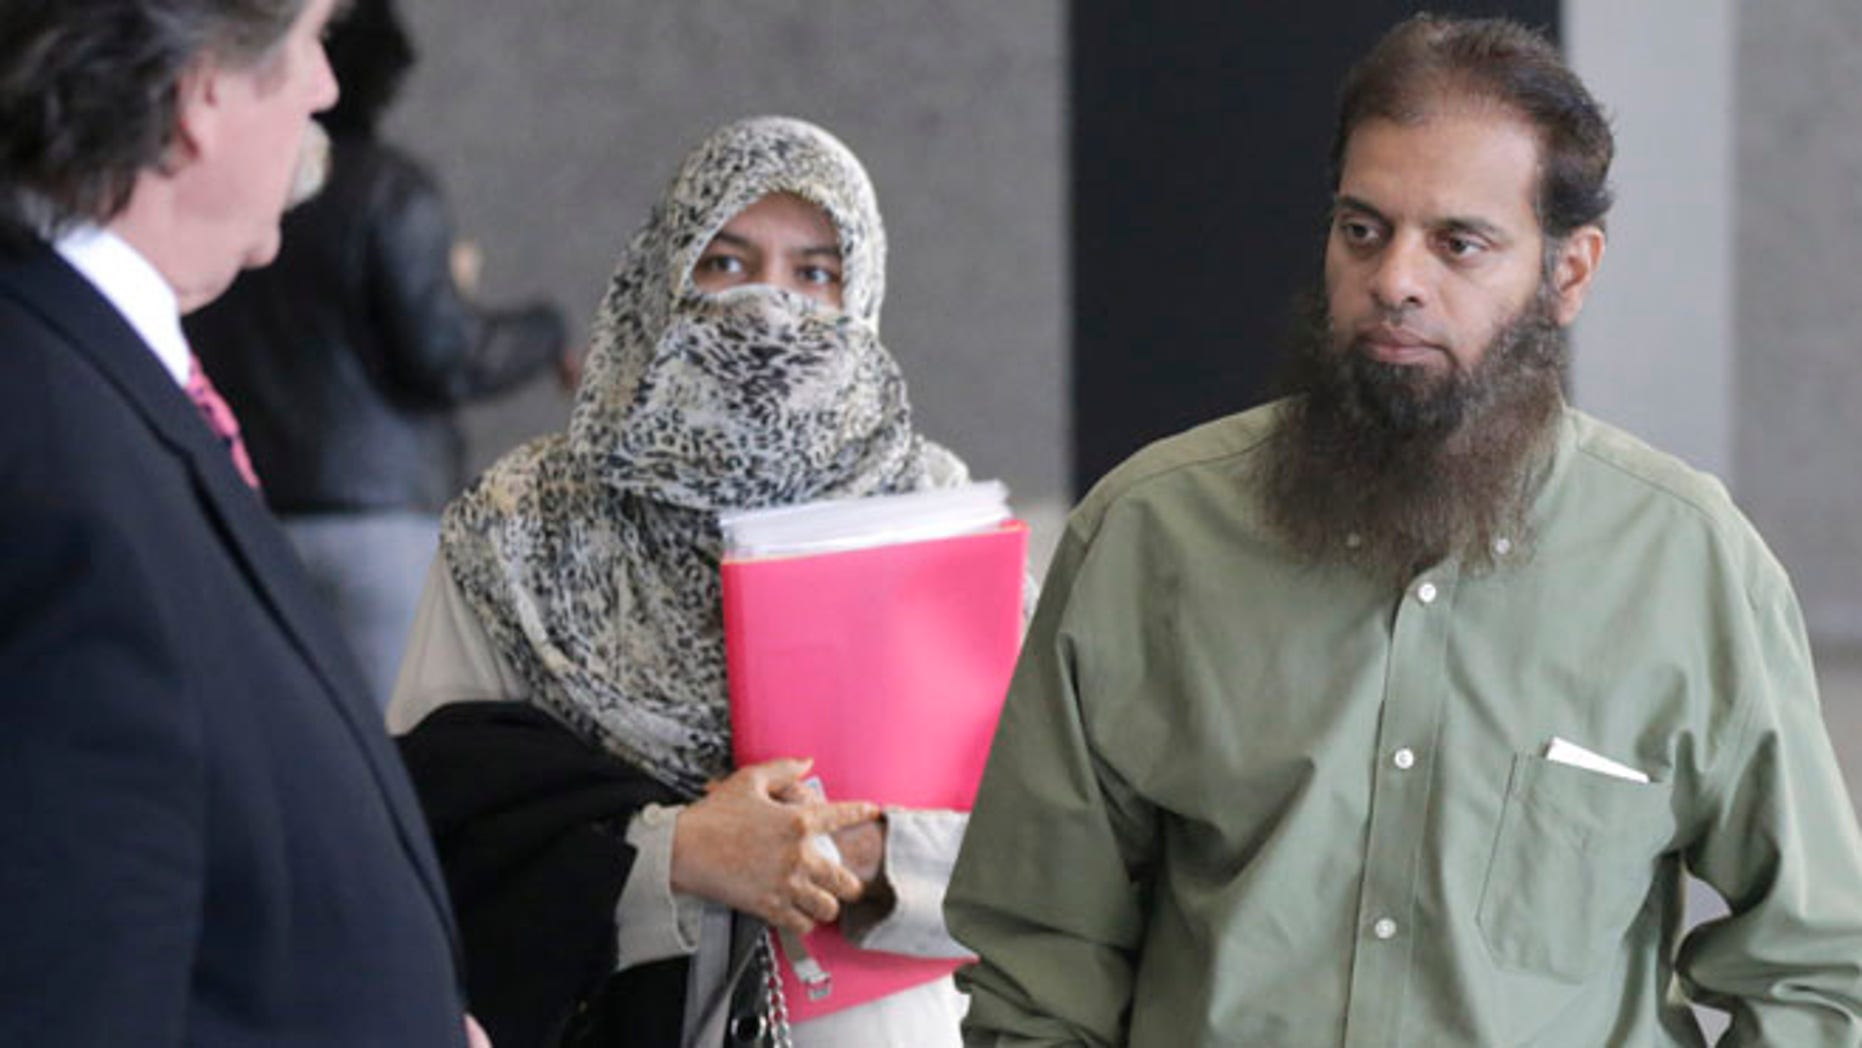 Oct. 9, 2014: Shafi Khan, right, and Zarine Khan, center, parents of Mohammed Hamzah Khan, meet with the family's attorney, Thomas Dirkin, left, before Khan's detention hearing in federal court in Chicago.